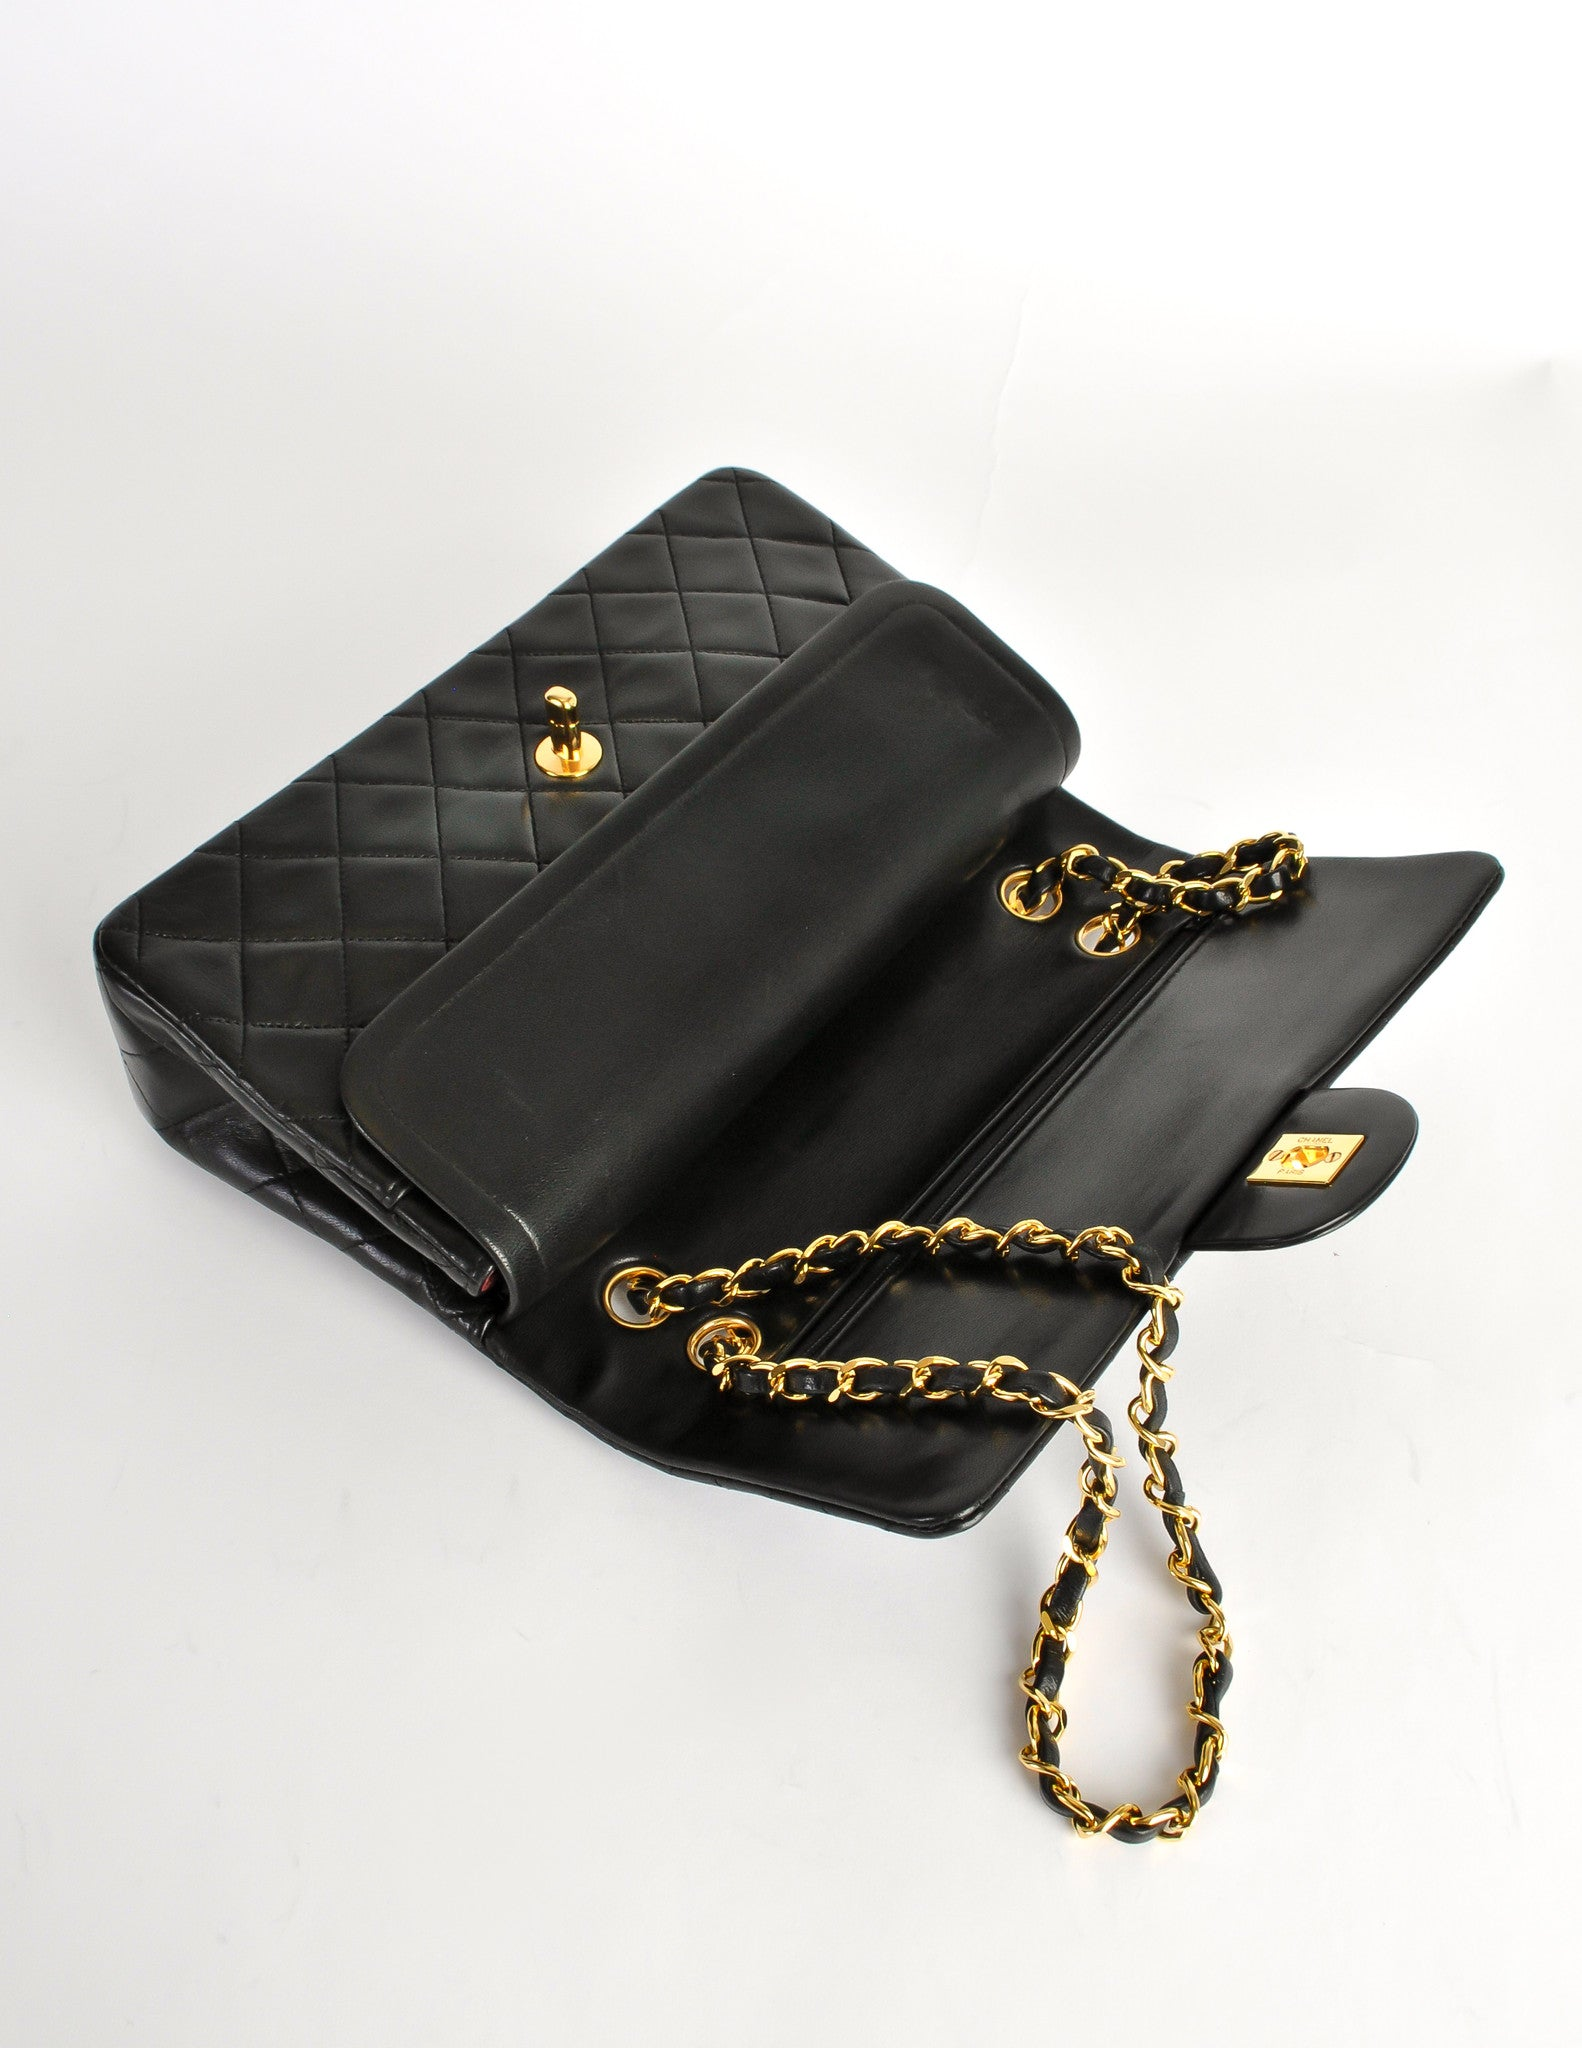 c3793009e72 Chanel Vintage Black Quilted Lambskin Leather Classic Double Flap Bag -  Amarcord Vintage Fashion - 9